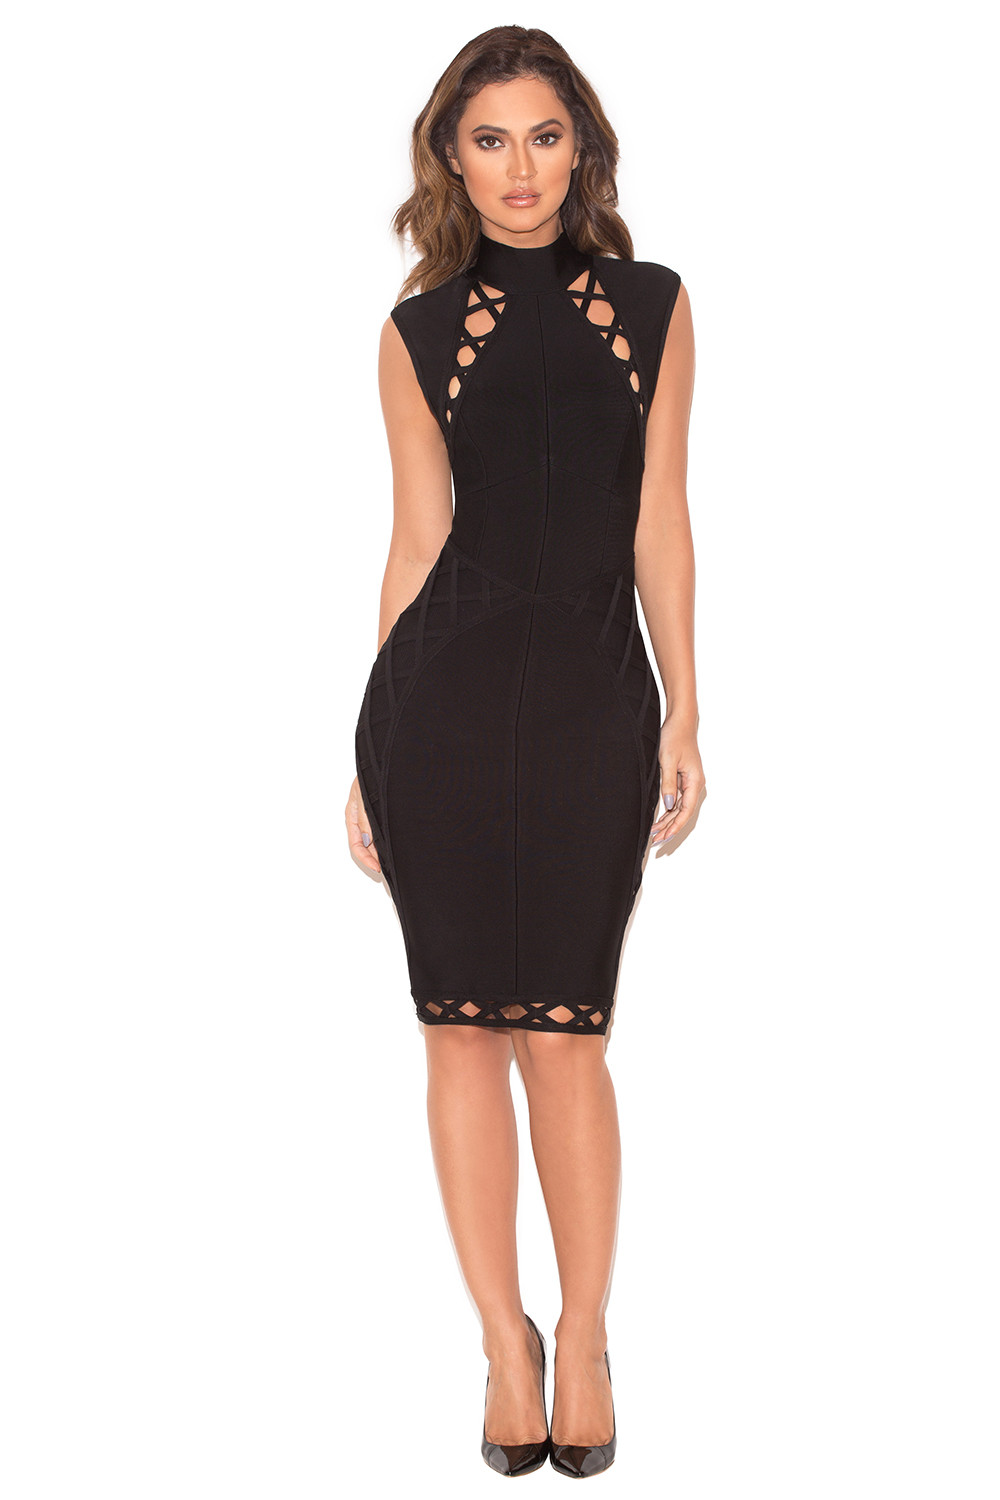 Clothing  Bandage Dresses  u0026#39;Sairau0026#39; Black Lace Up Detail Bandage Dress